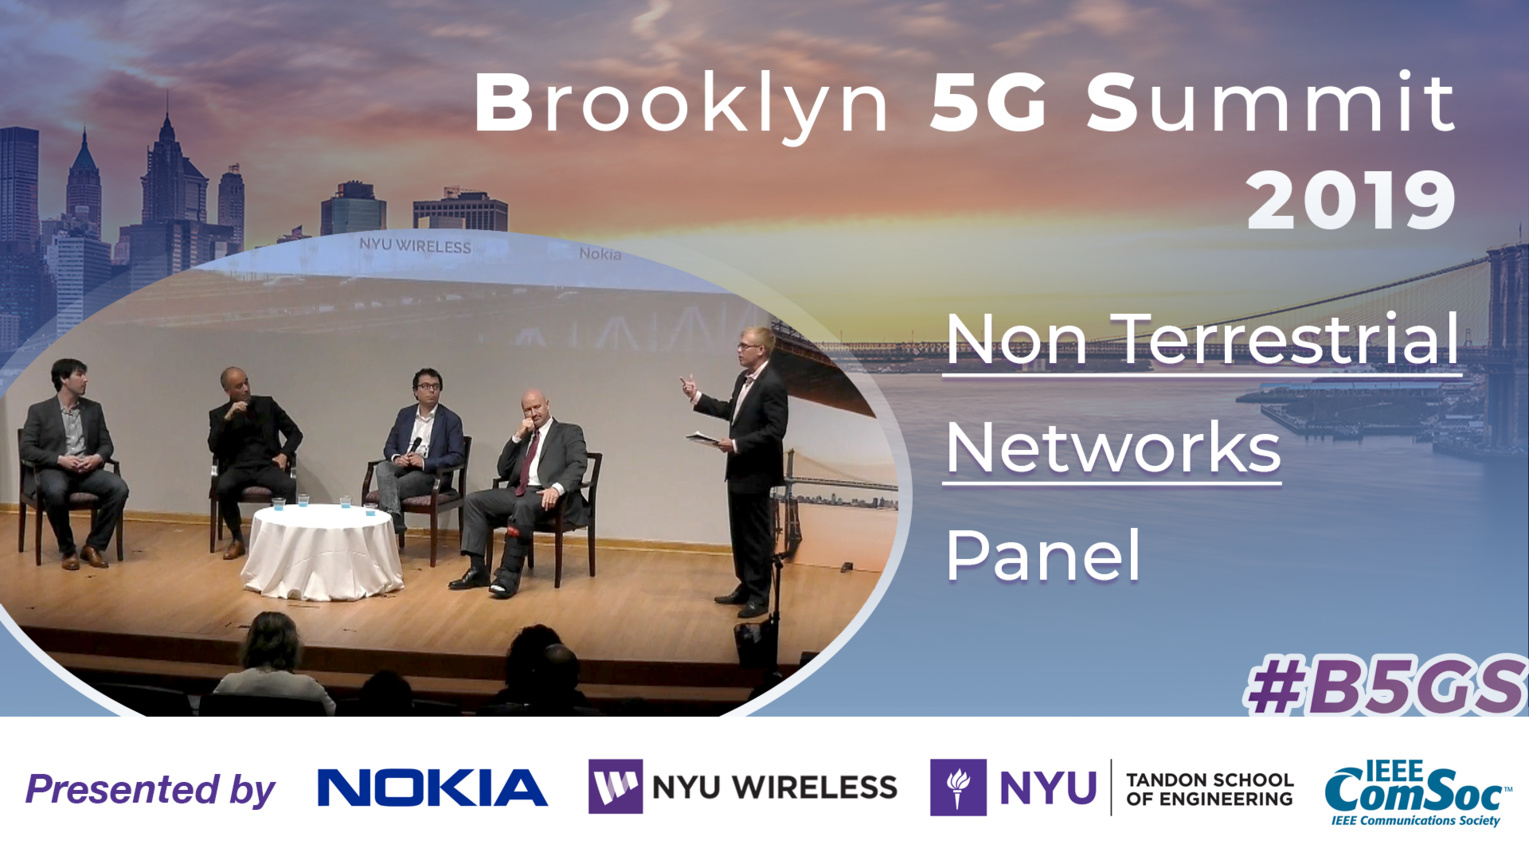 Panel: Non Terrestrial Networks - B5GS 2019